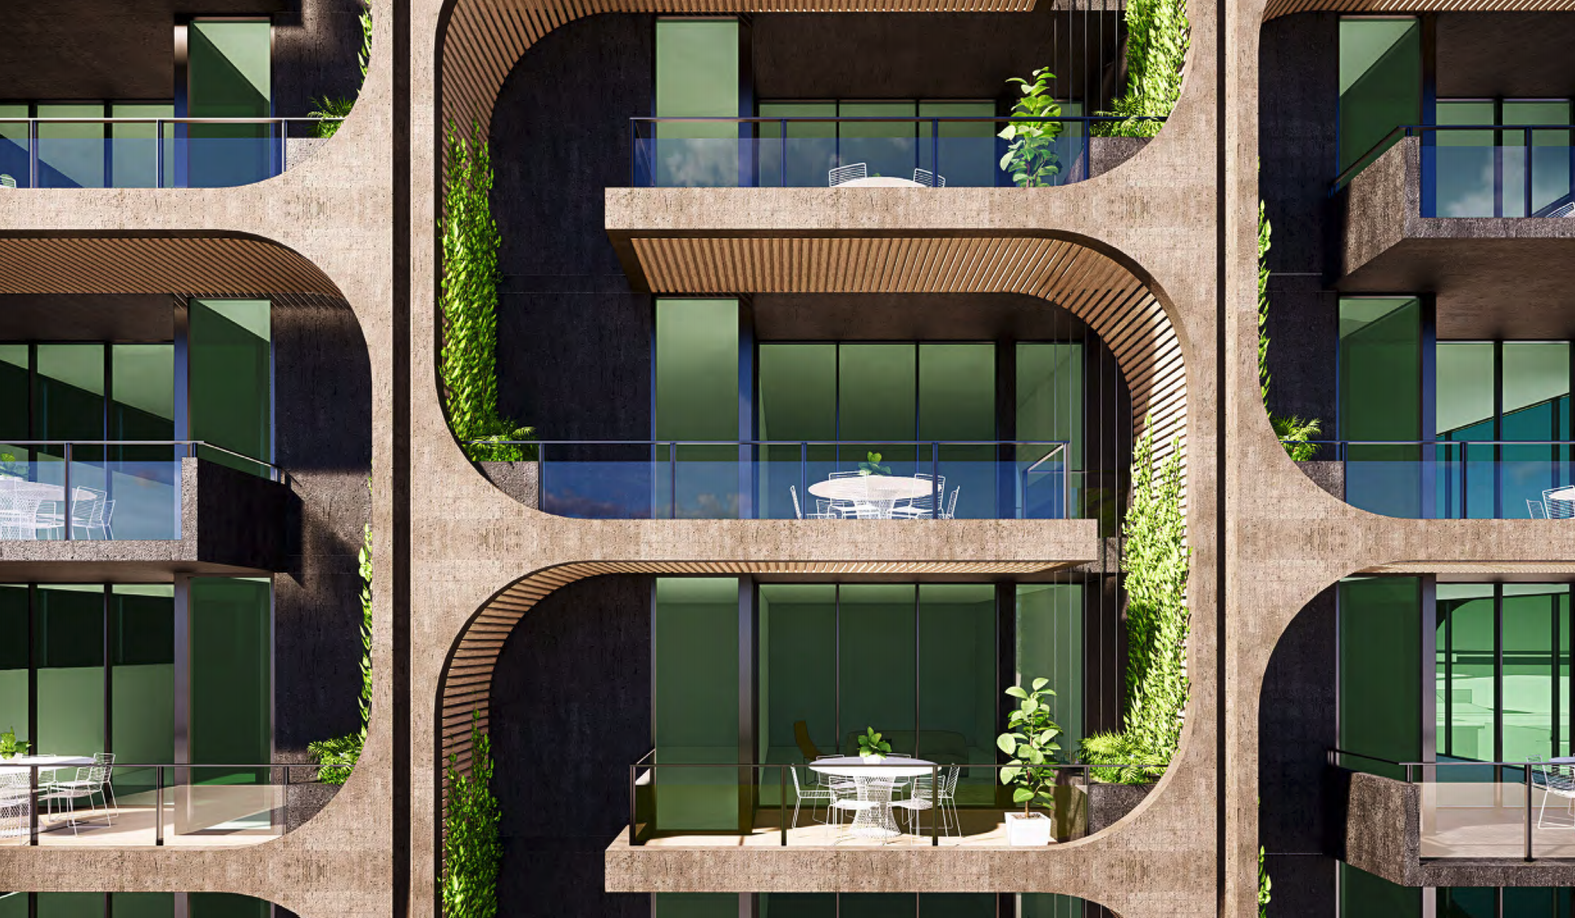 Vertical greenery is incorporated in the façade.